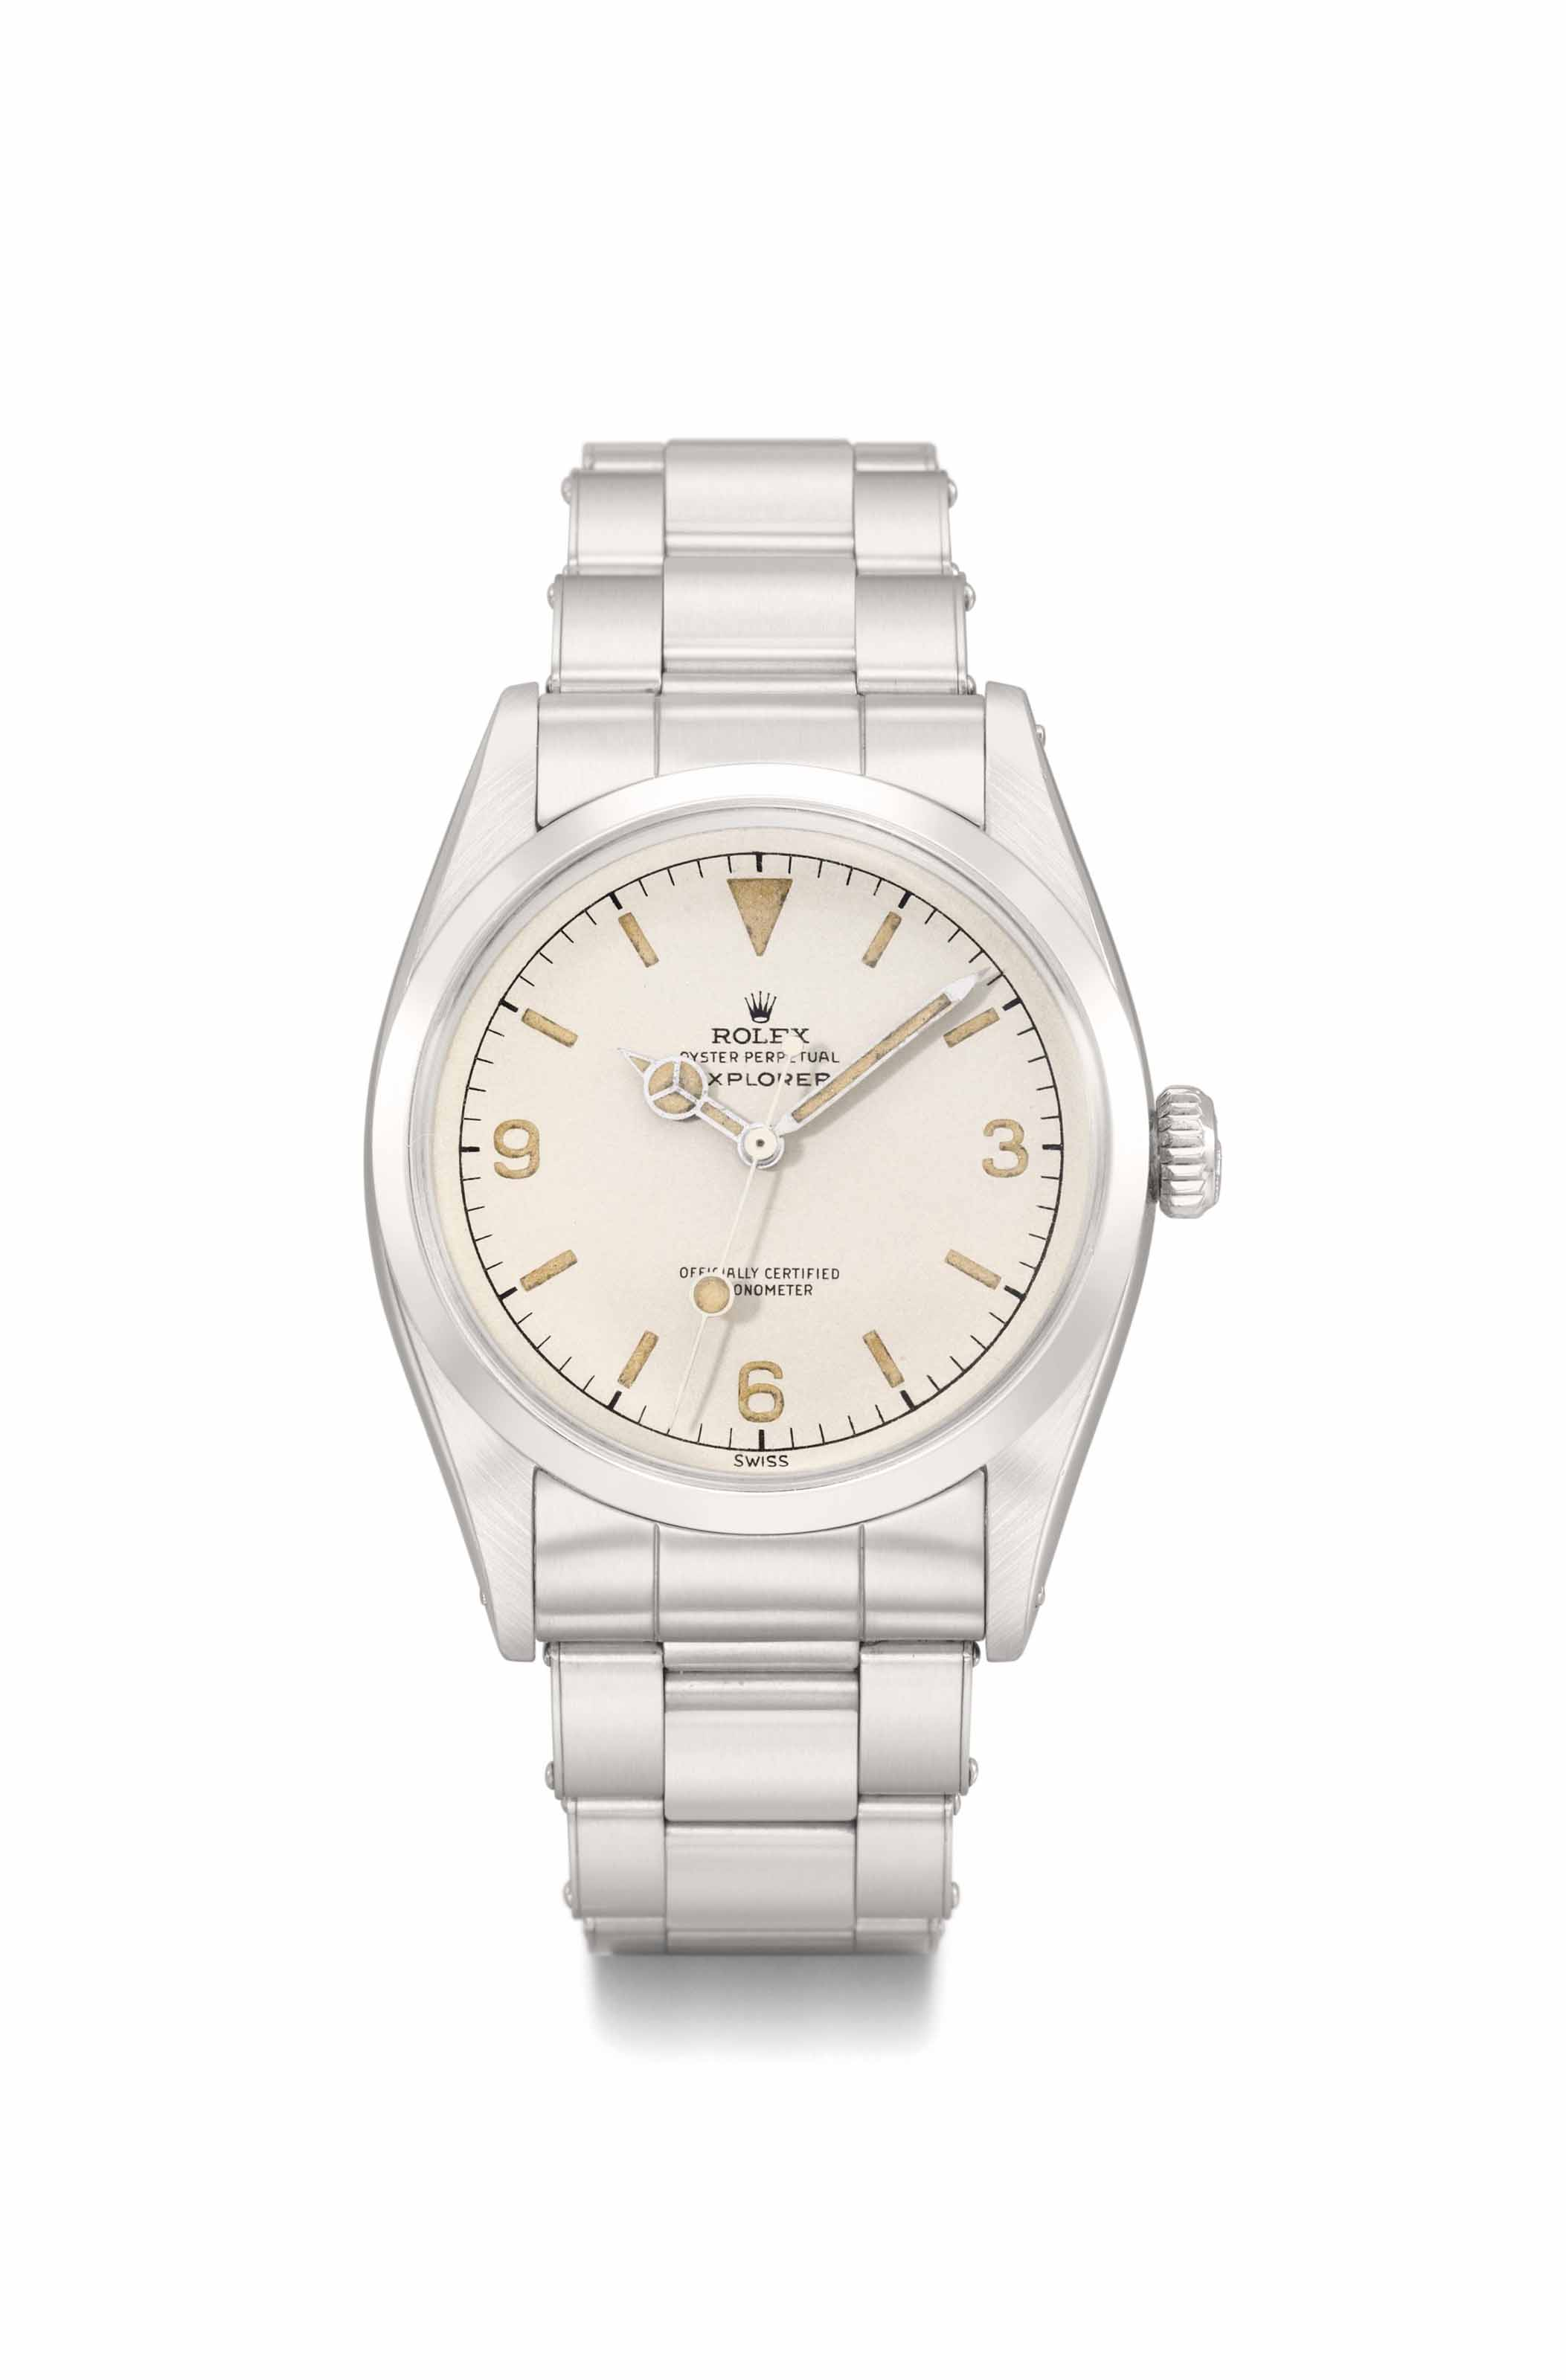 Rolex. A very fine and unusual stainless steel automatic wristwatch with sweep centre seconds, bracelet and off-white dial